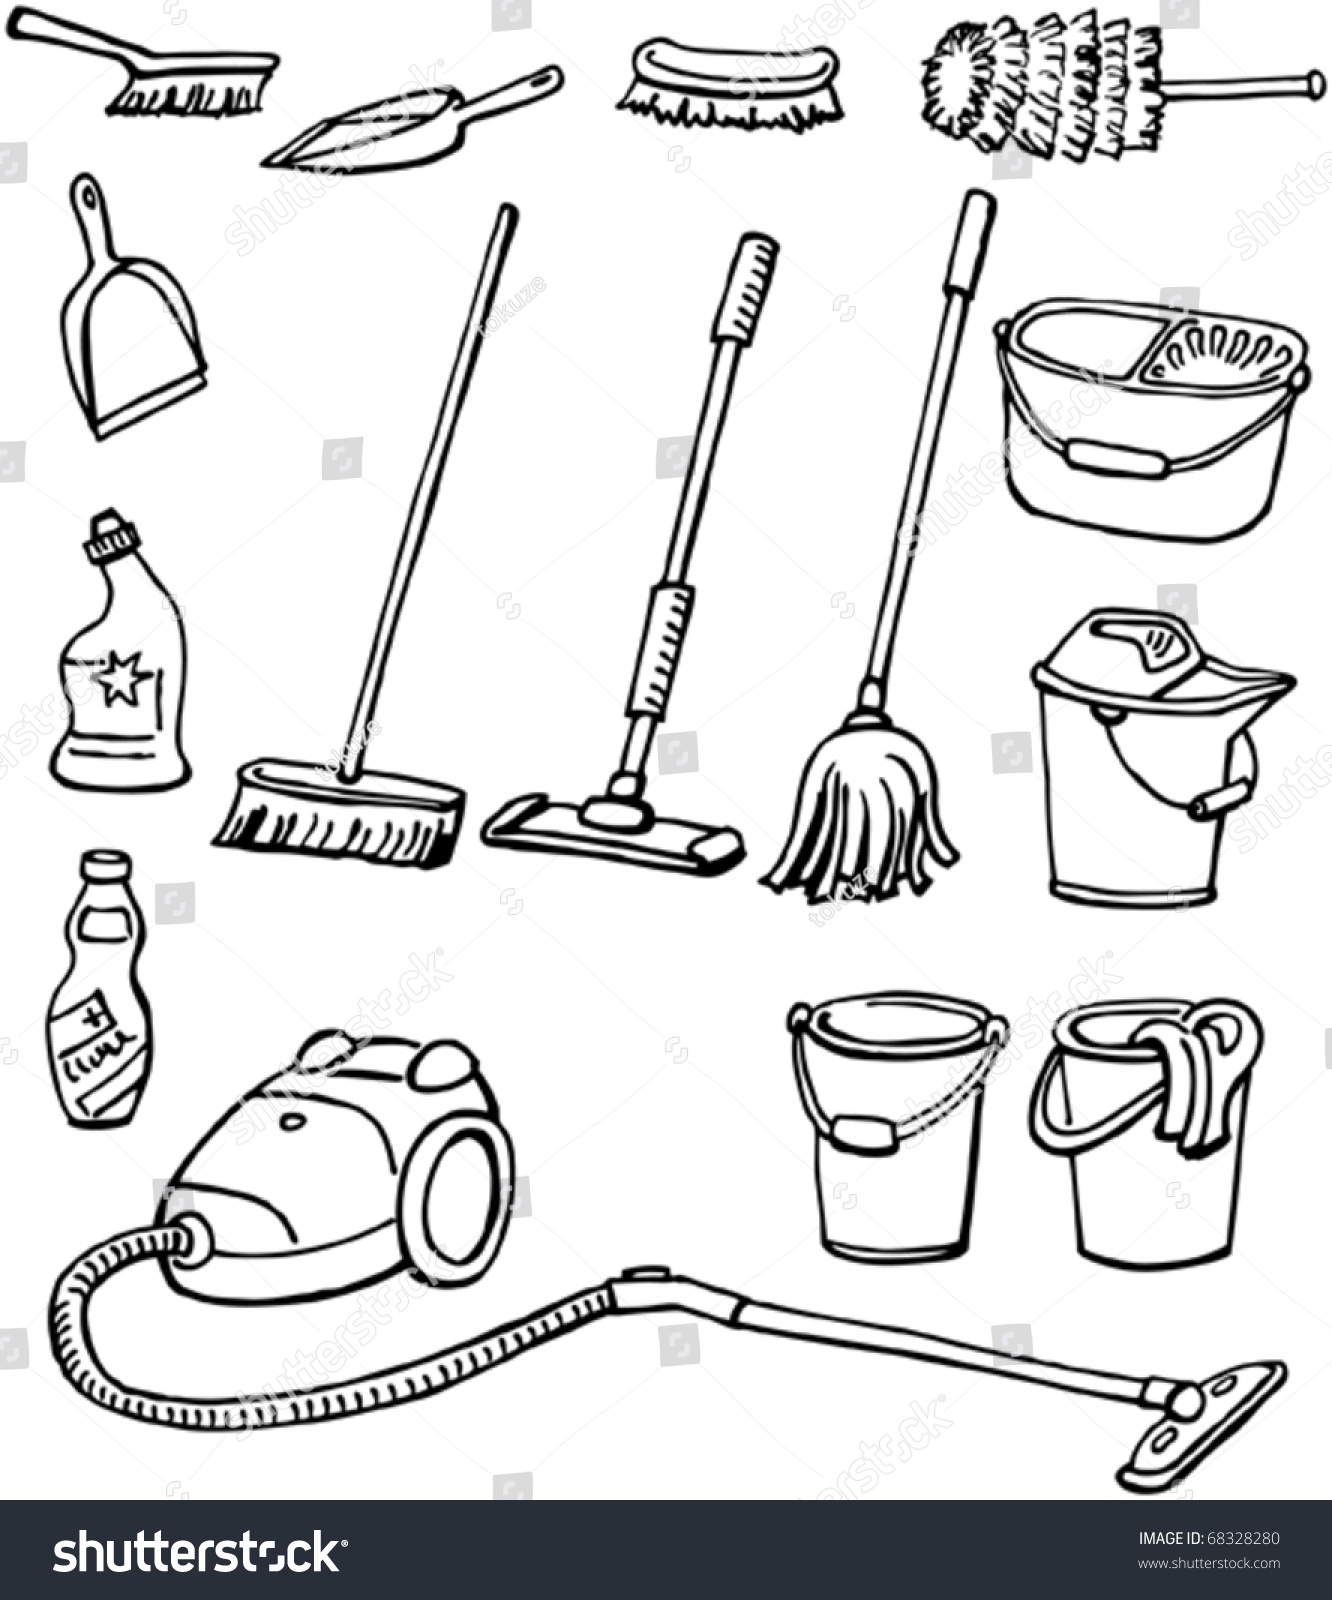 Cleaning Tools Worksheet